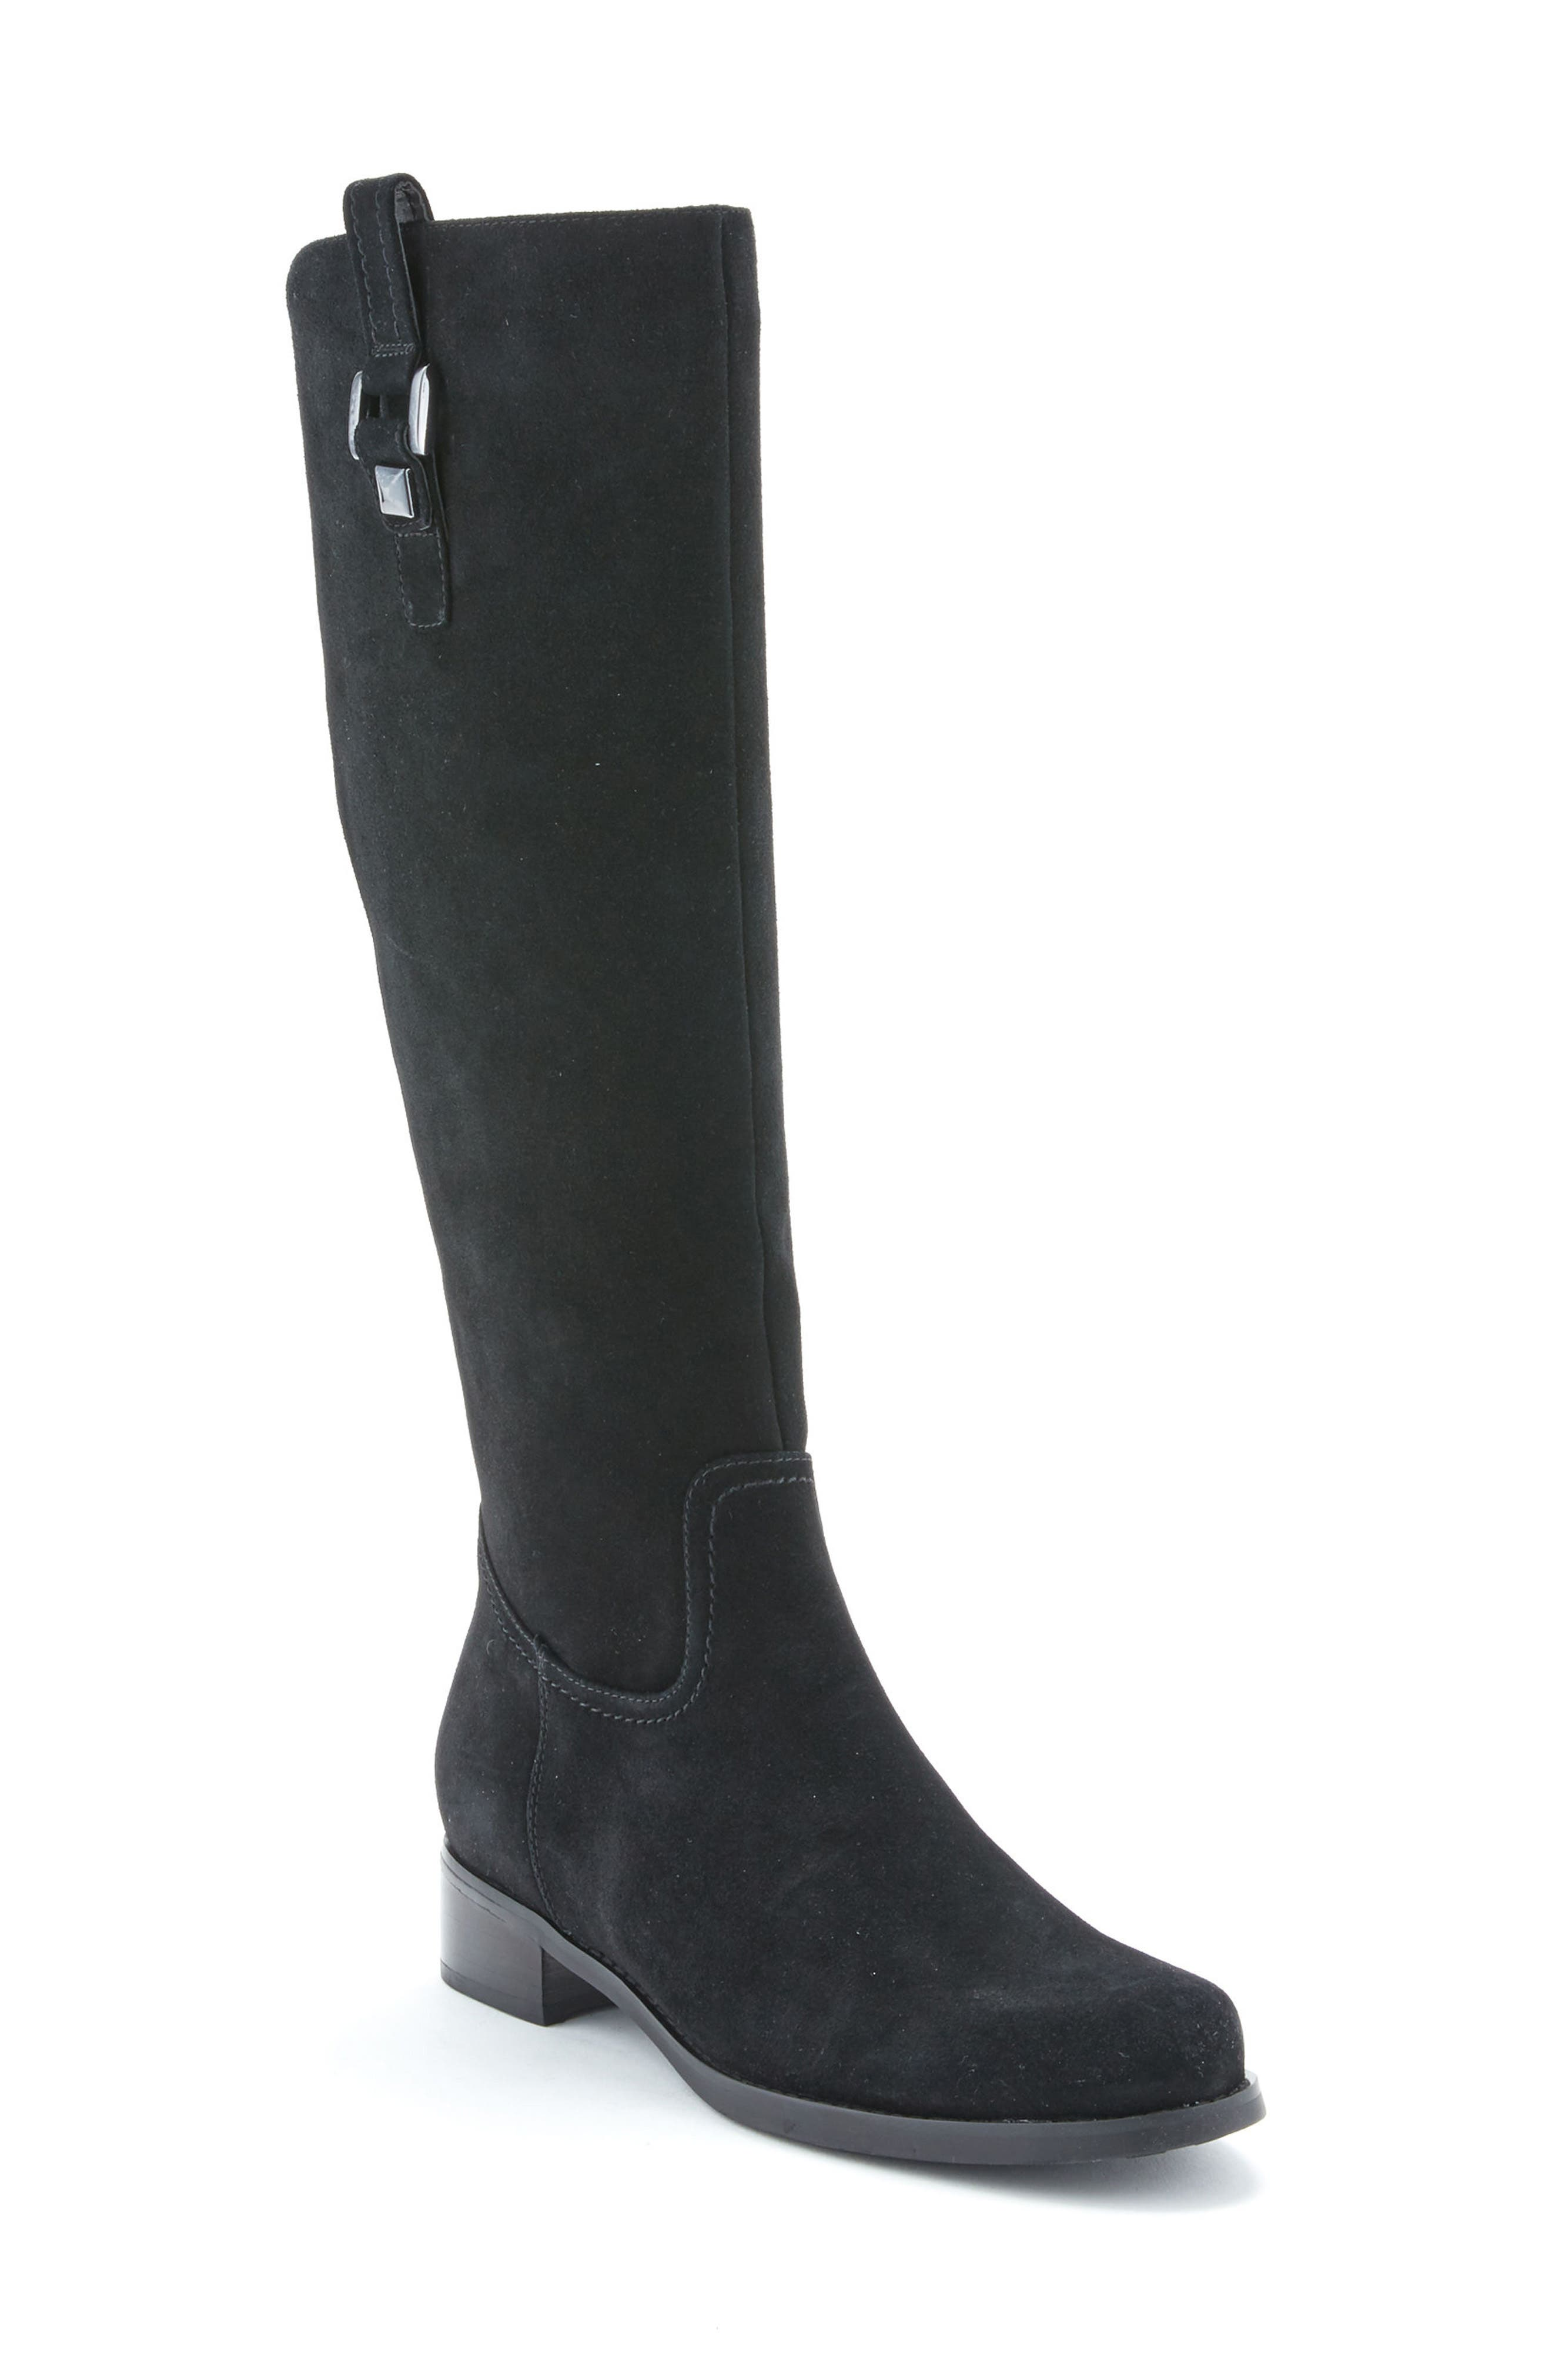 Blondo 'Velvet' Waterproof Riding Boot (Women) (Regular & Wide Calf)